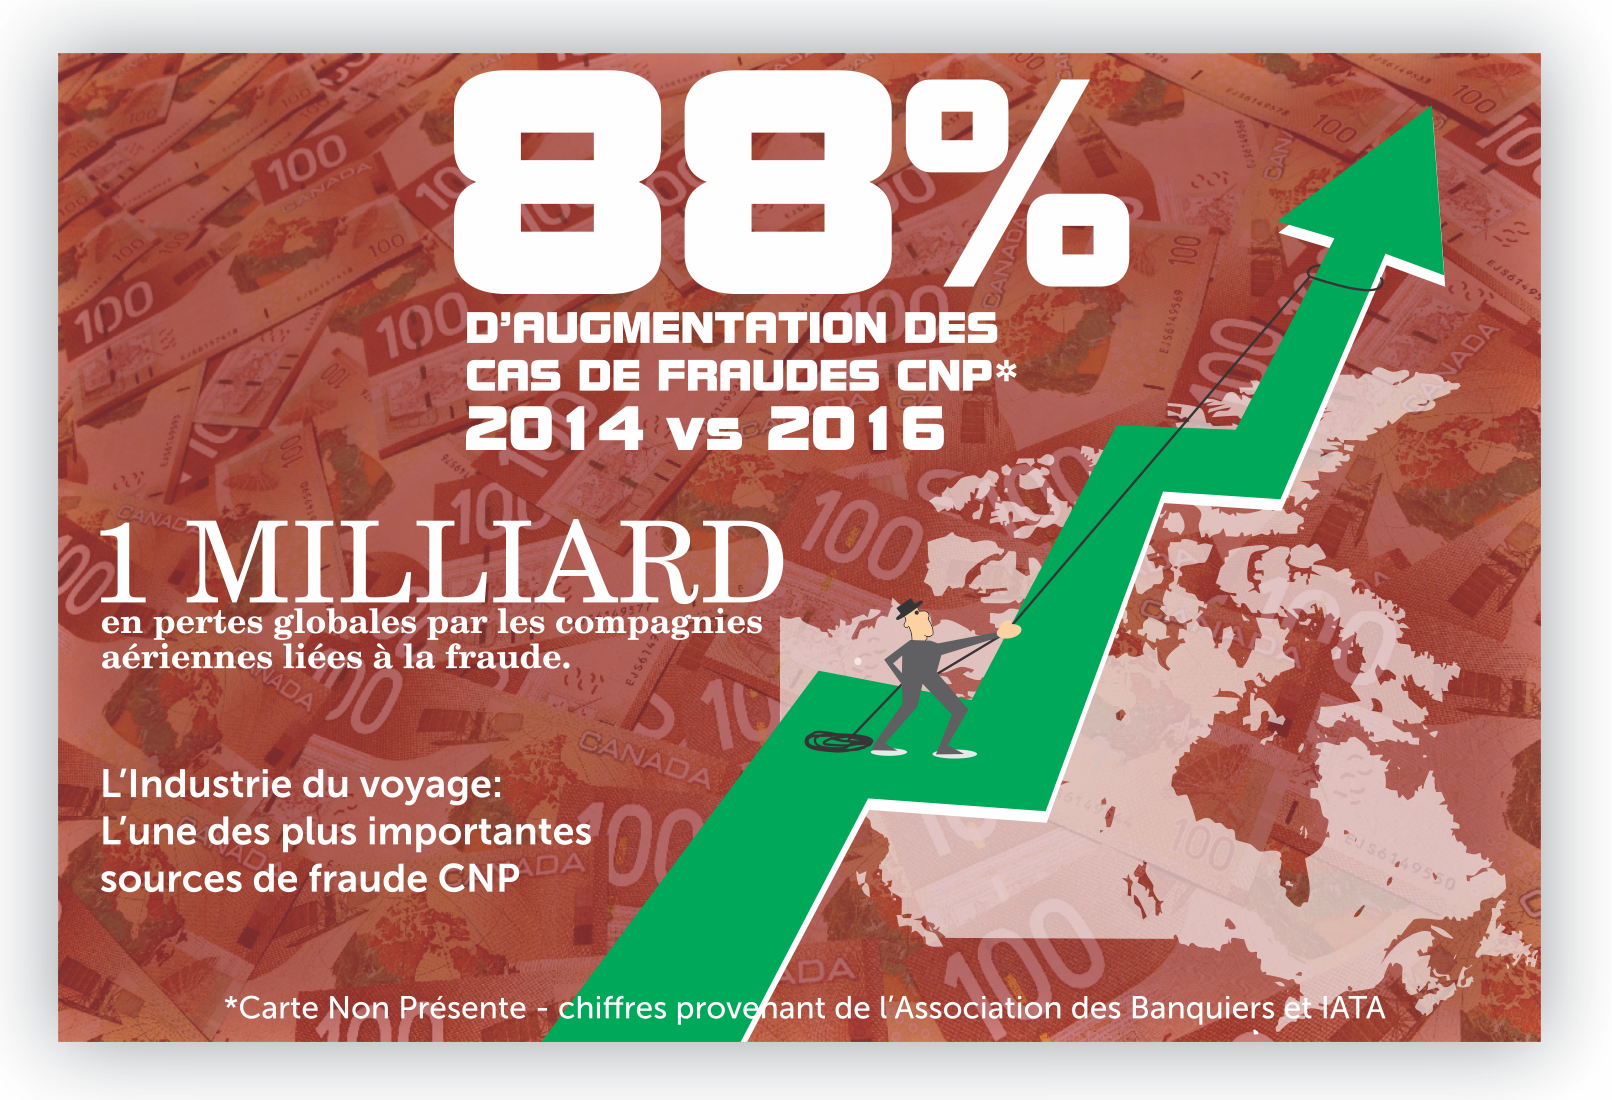 6 mars graphic 88%_fr.png